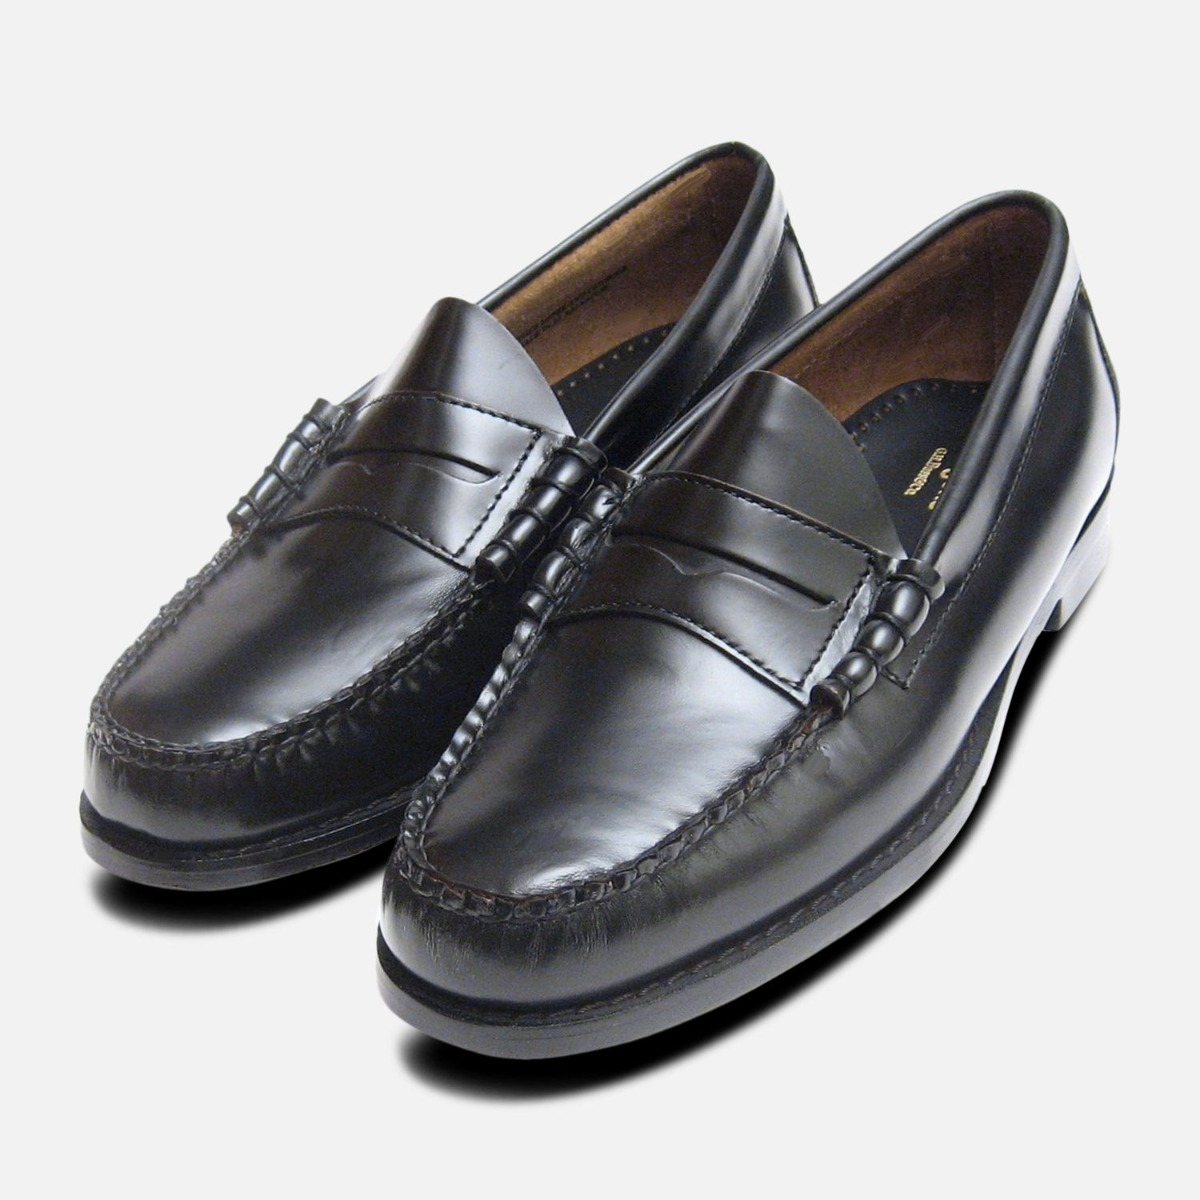 Classic Mens Black Polished Larson Penny Loafers GH Bass ...